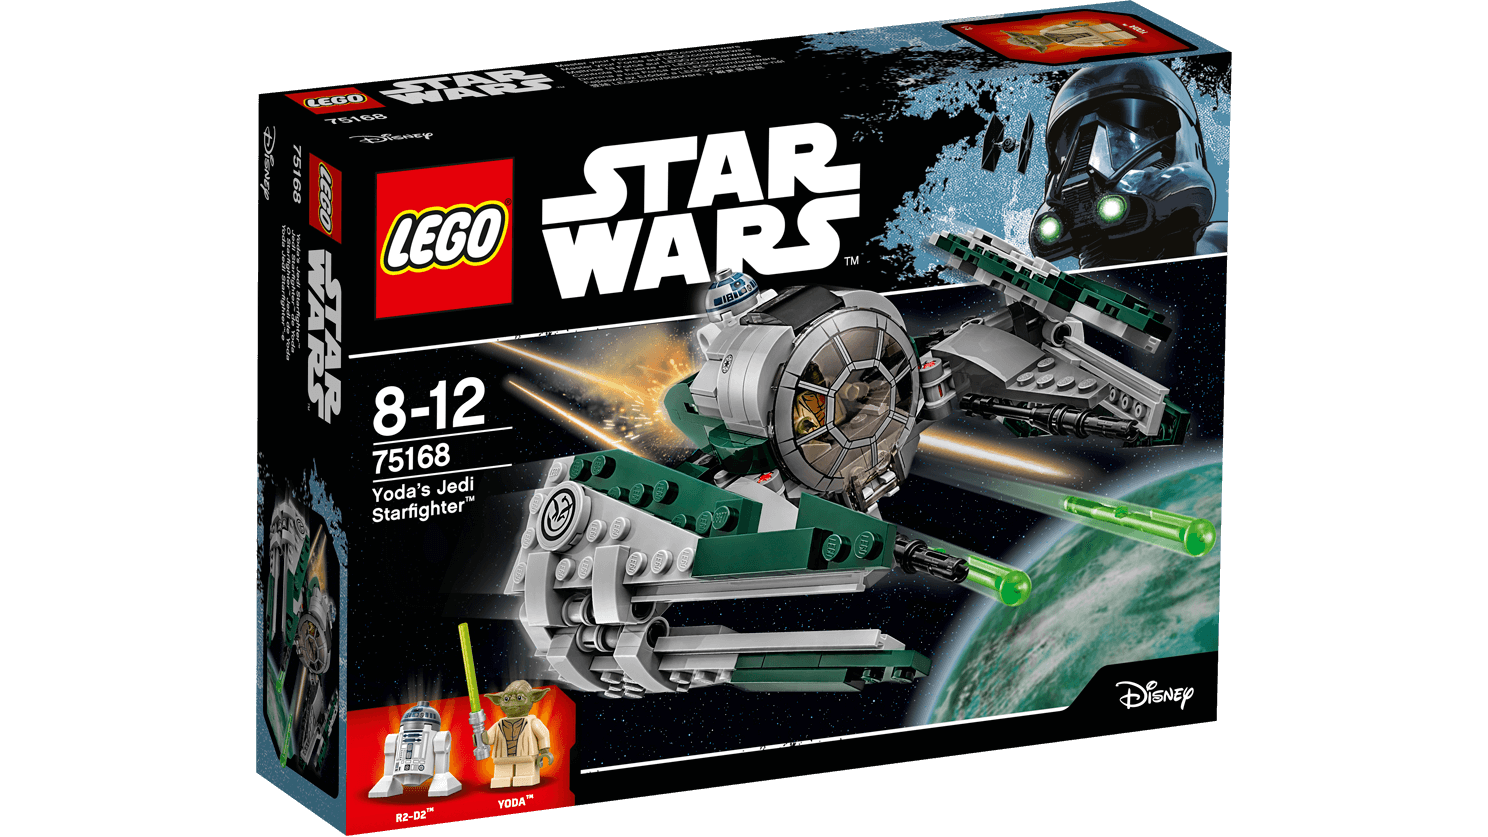 Pin lego 60032 city the lego summer wave in official images on - Lego